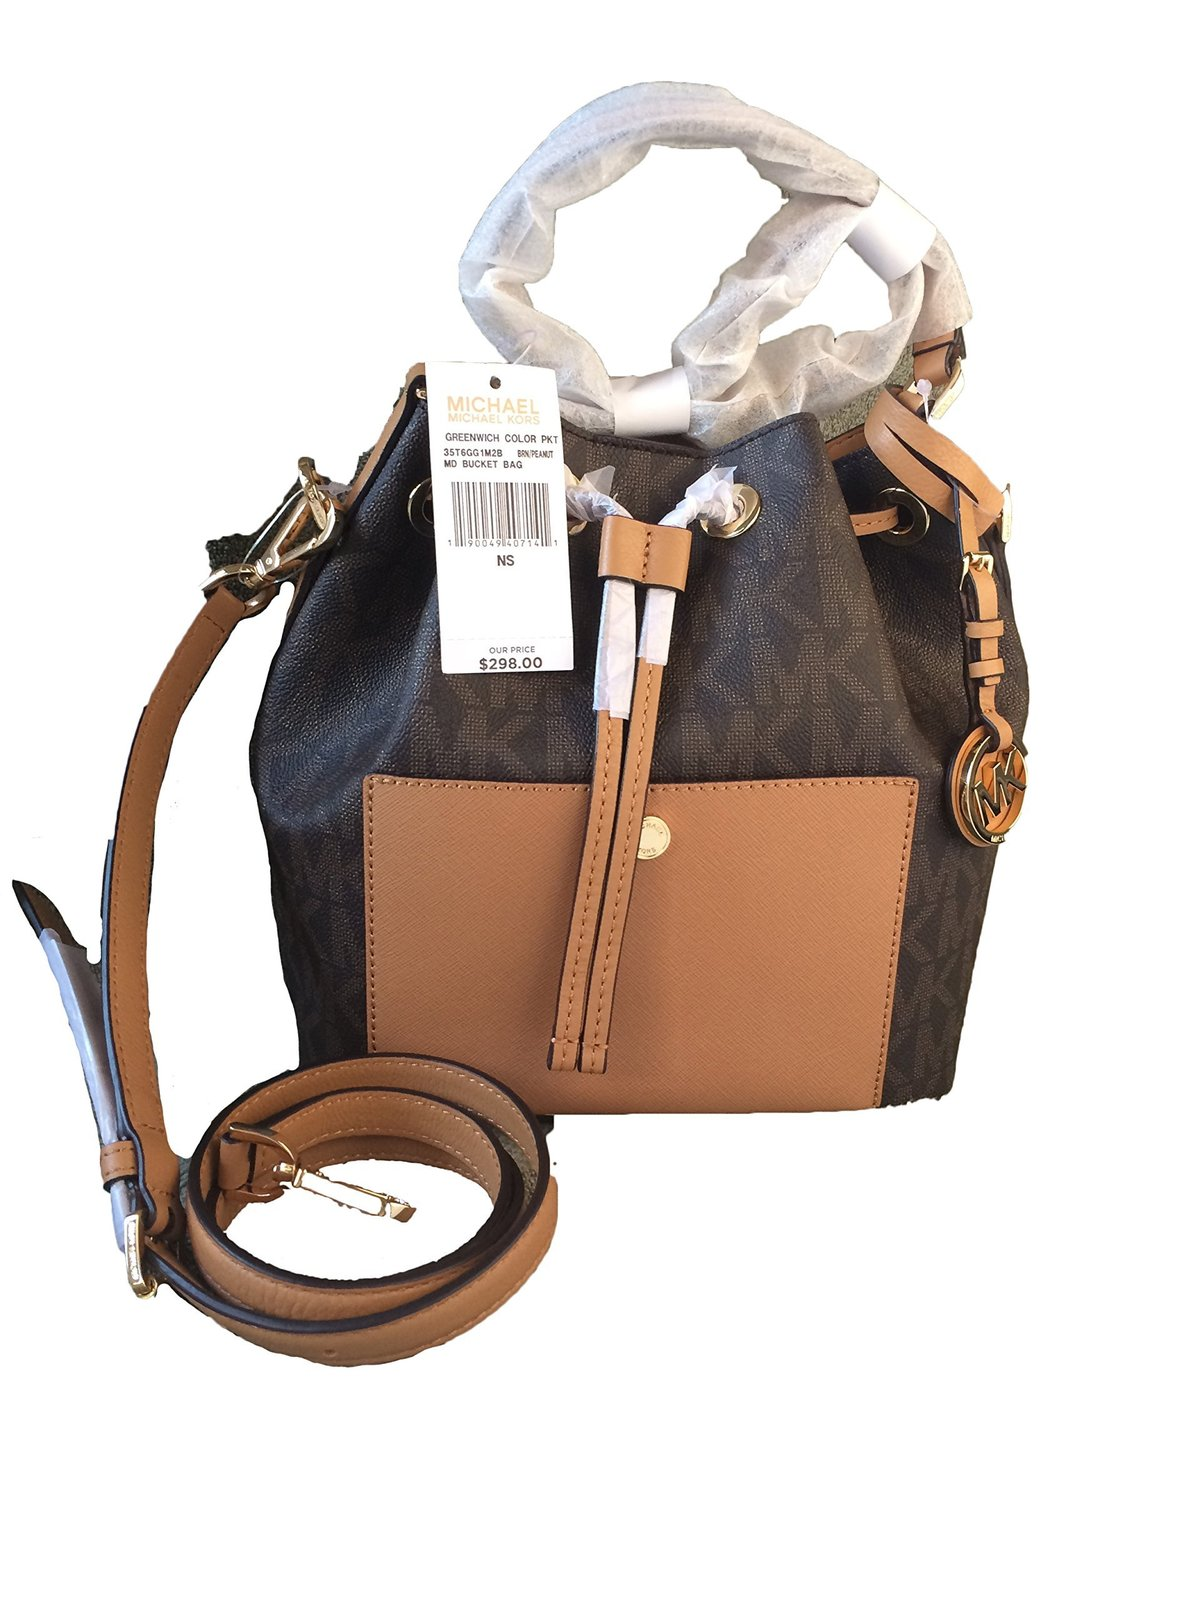 59bde9175c94 Michael Kors Greenwich Medium Bucket Bag and 50 similar items. 81c5ldickil